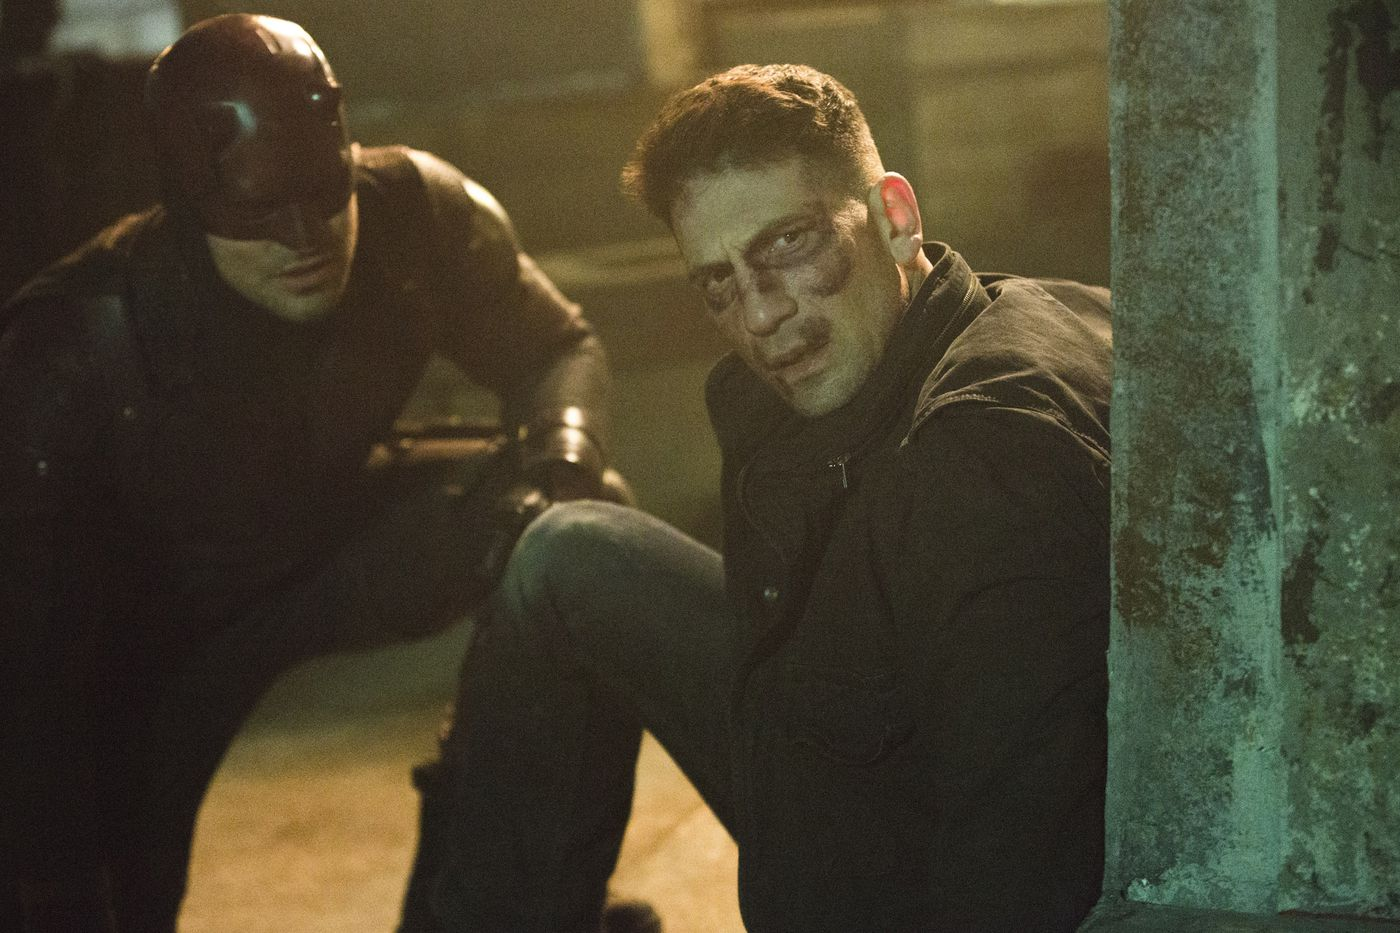 The Punisher vs Daredevil